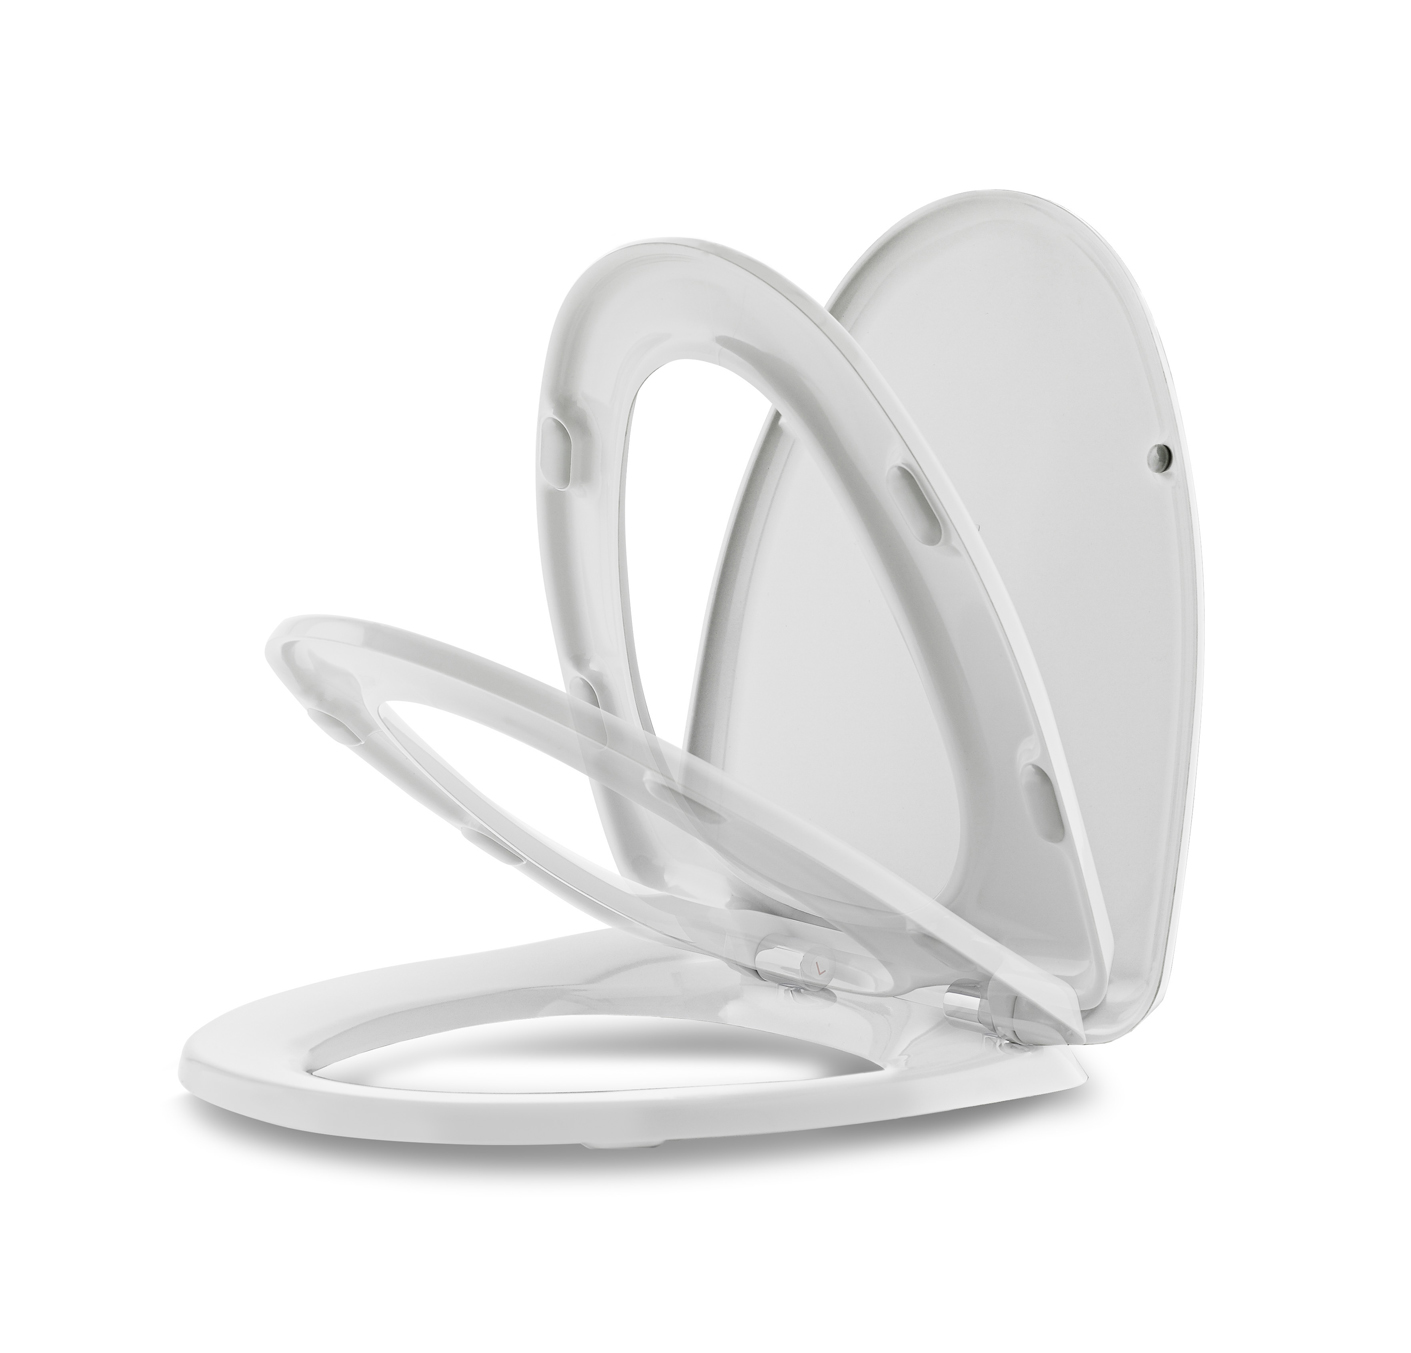 Soft close toilet seat, that is the perfect sollution. You can find this one here.